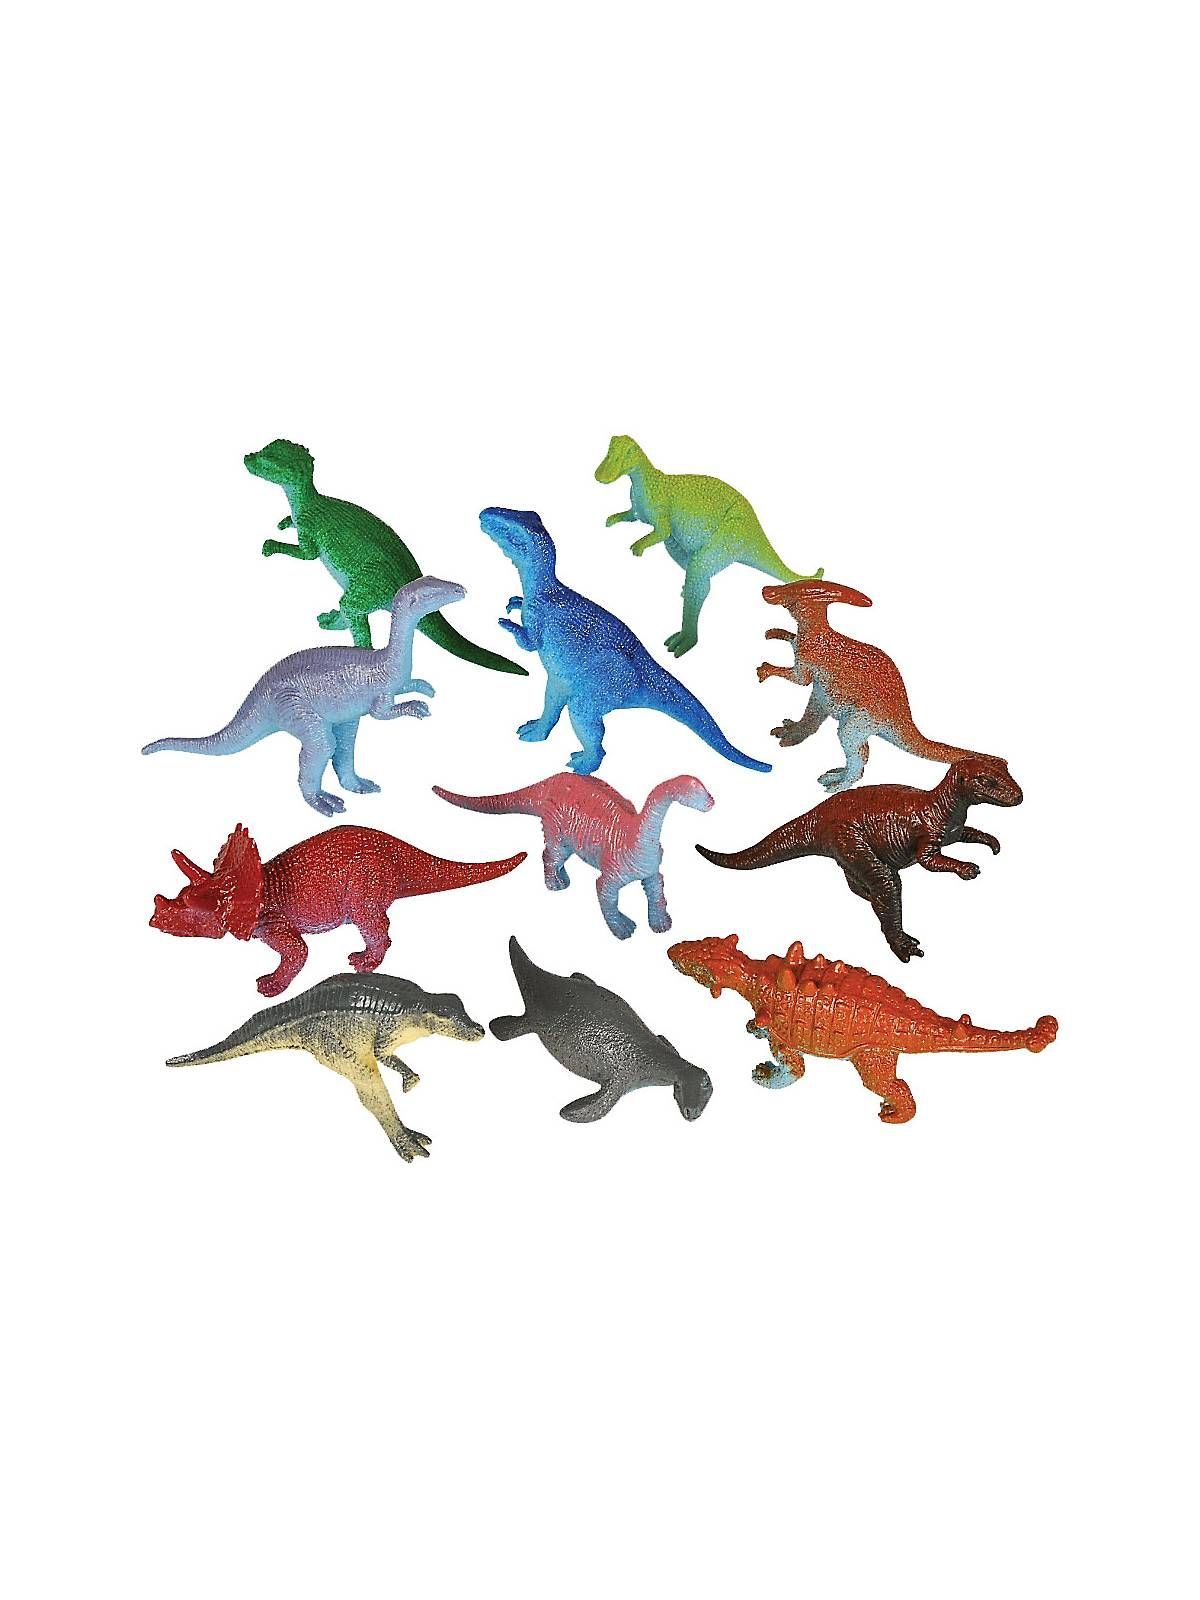 Dinosaur Assortment 2 60 Pack